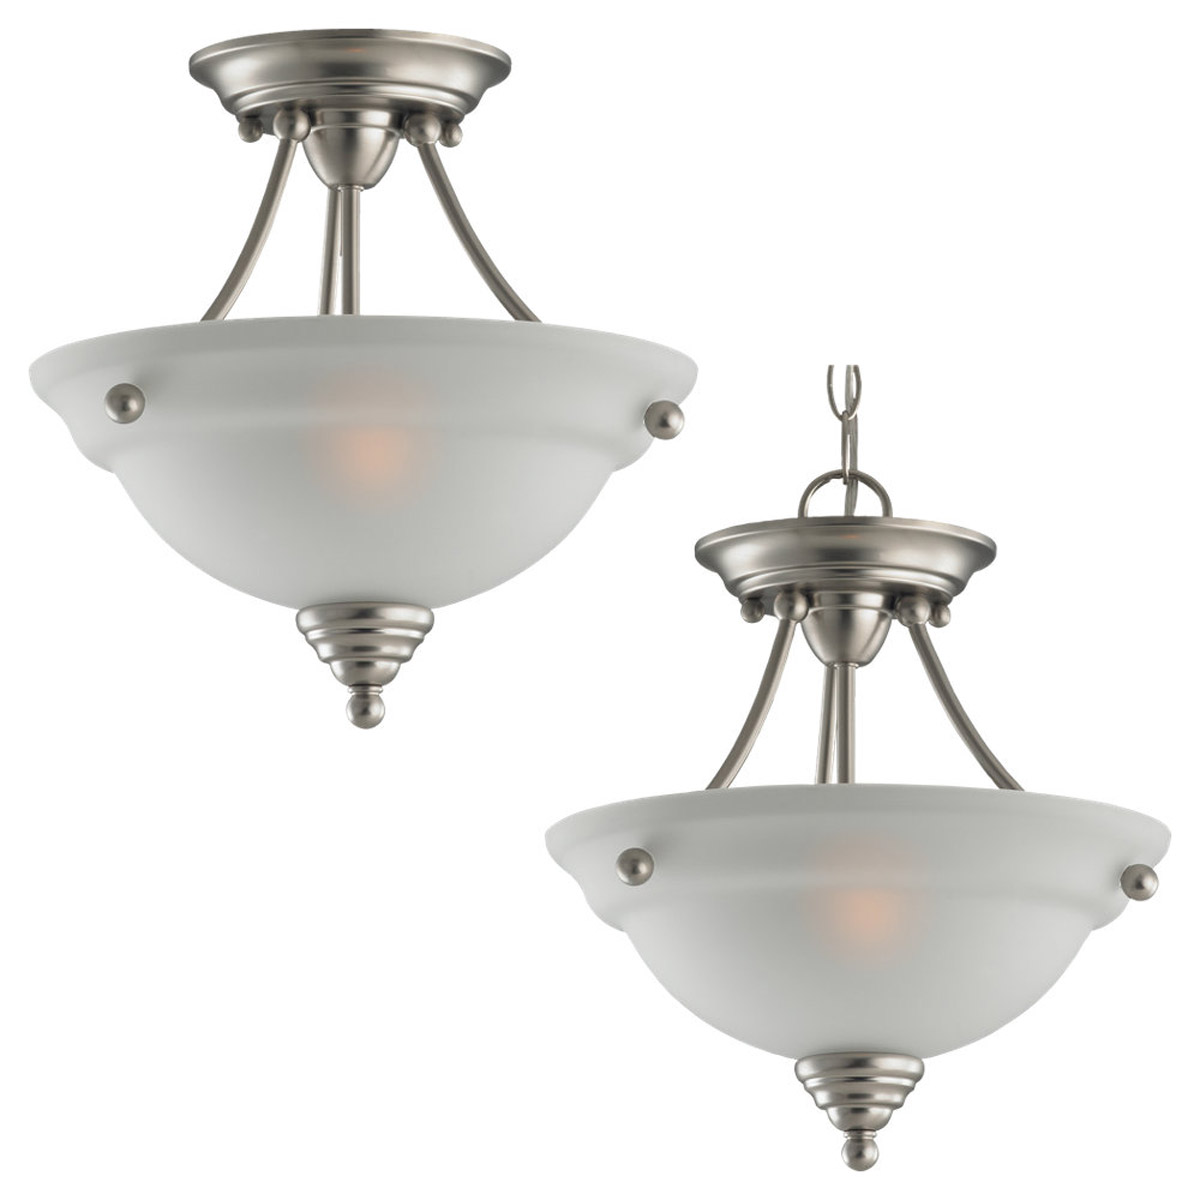 Sea Gull Lighting Albany 2 Light Semi-Flush Mount in Brushed Nickel 77575-962